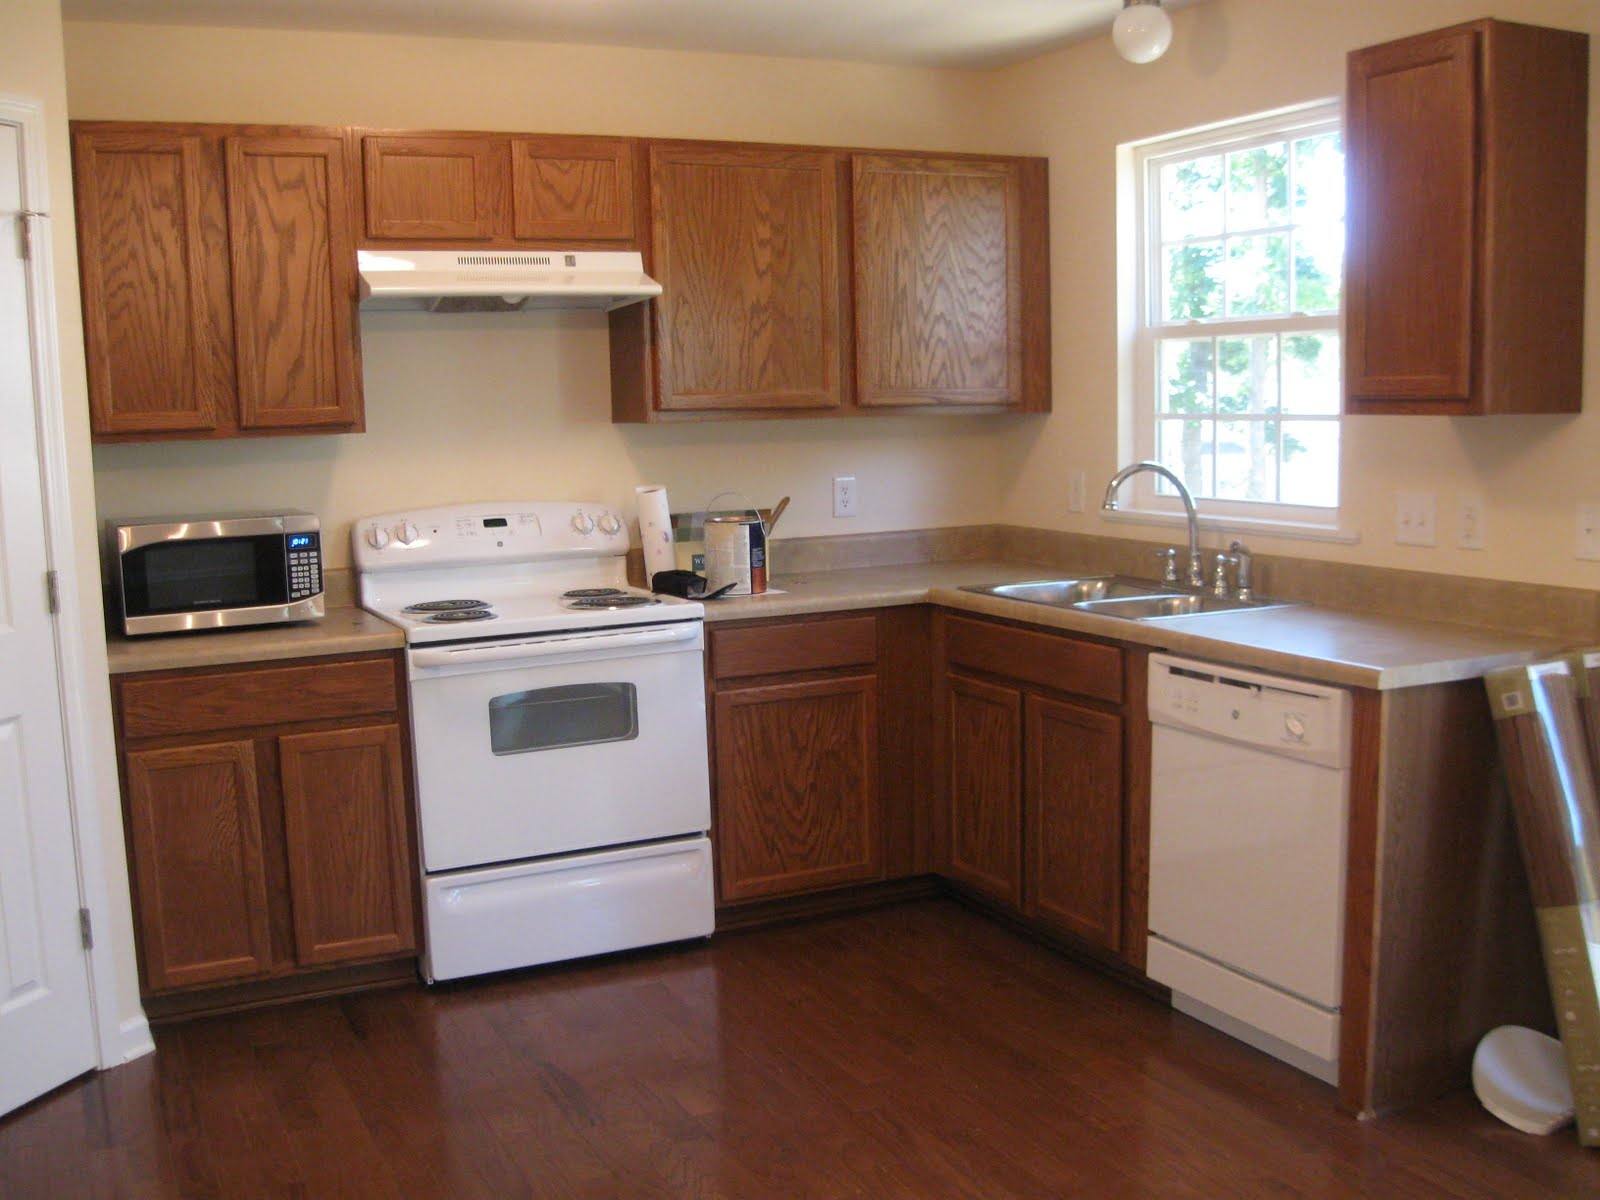 Wooden Painting Kitchen Cabinets Decoration (Image 10 of 10)